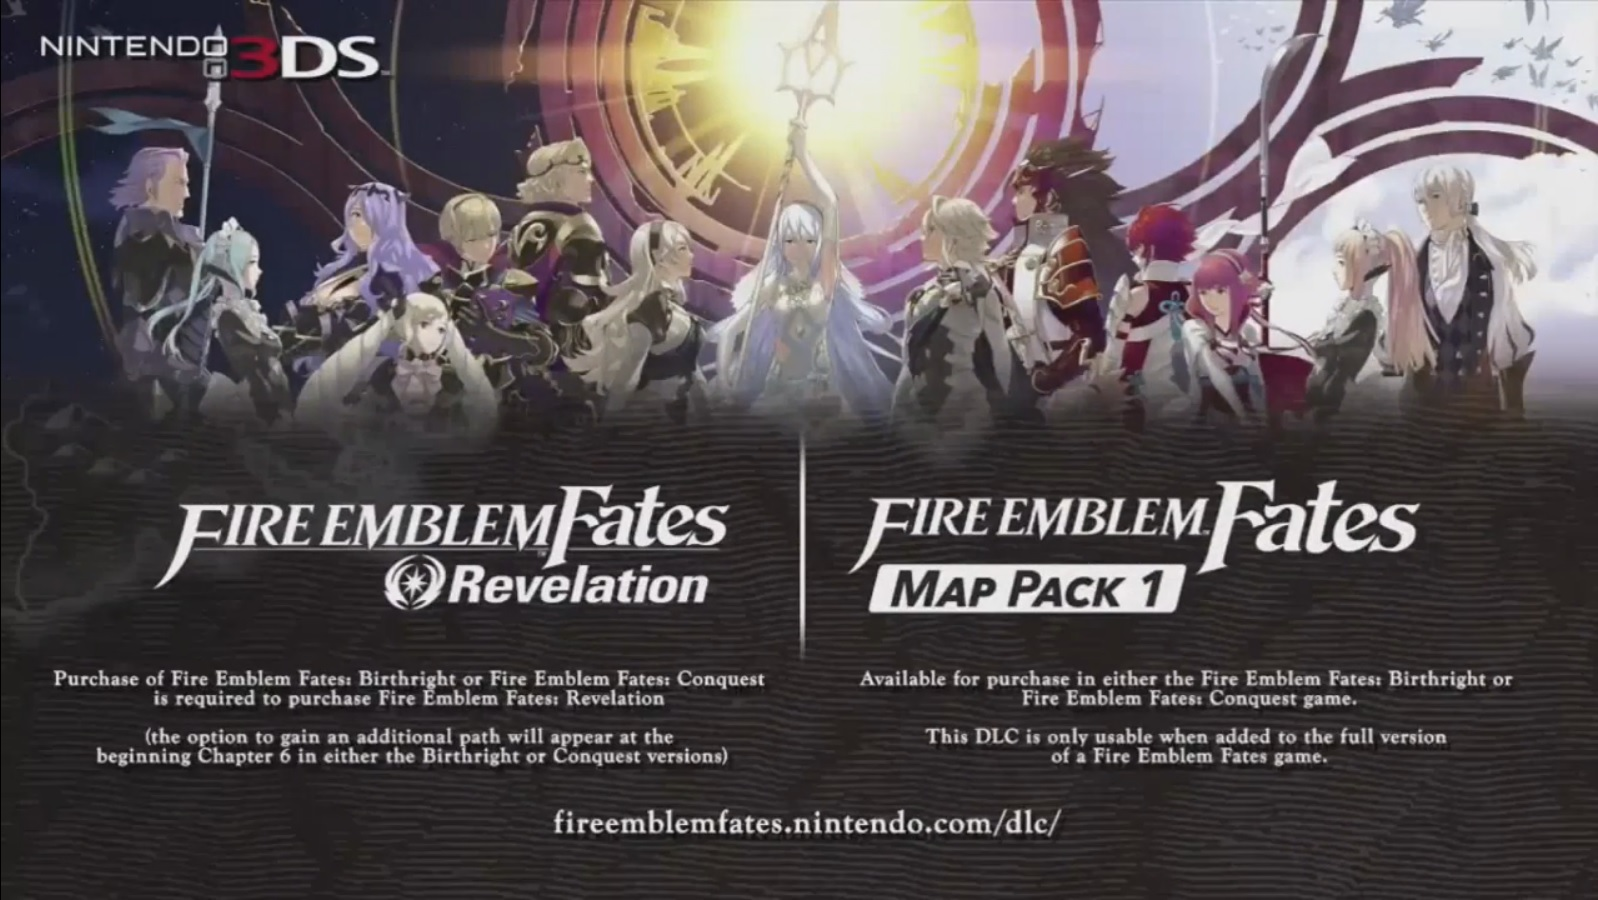 Fire Emblem Fates Downloadable Content Trailer Nintendo Everything - Fire emblem fates map pack 3 us